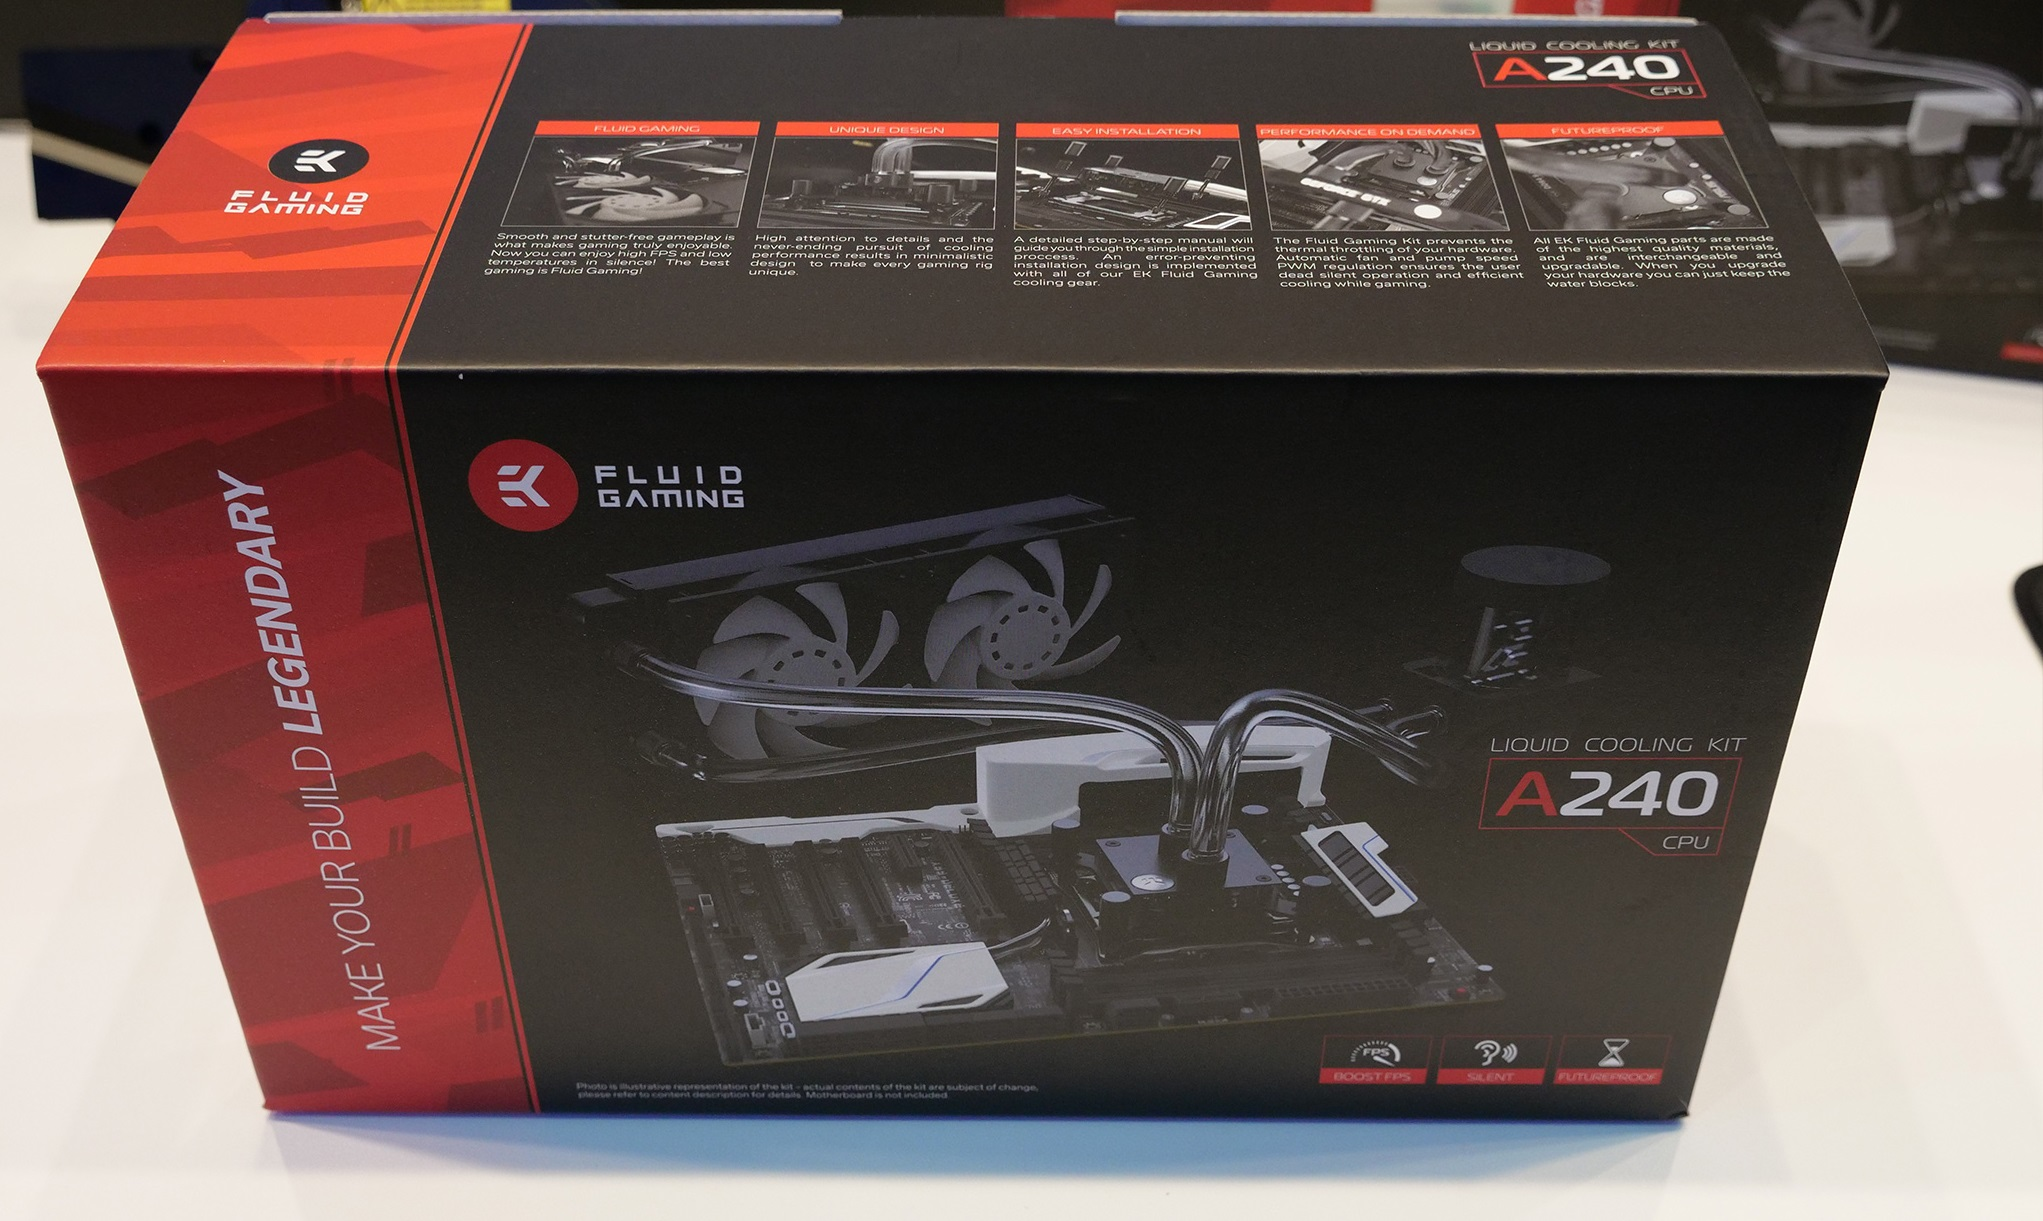 EK showcases their new Fluid Gaming series of custom water cooling kits